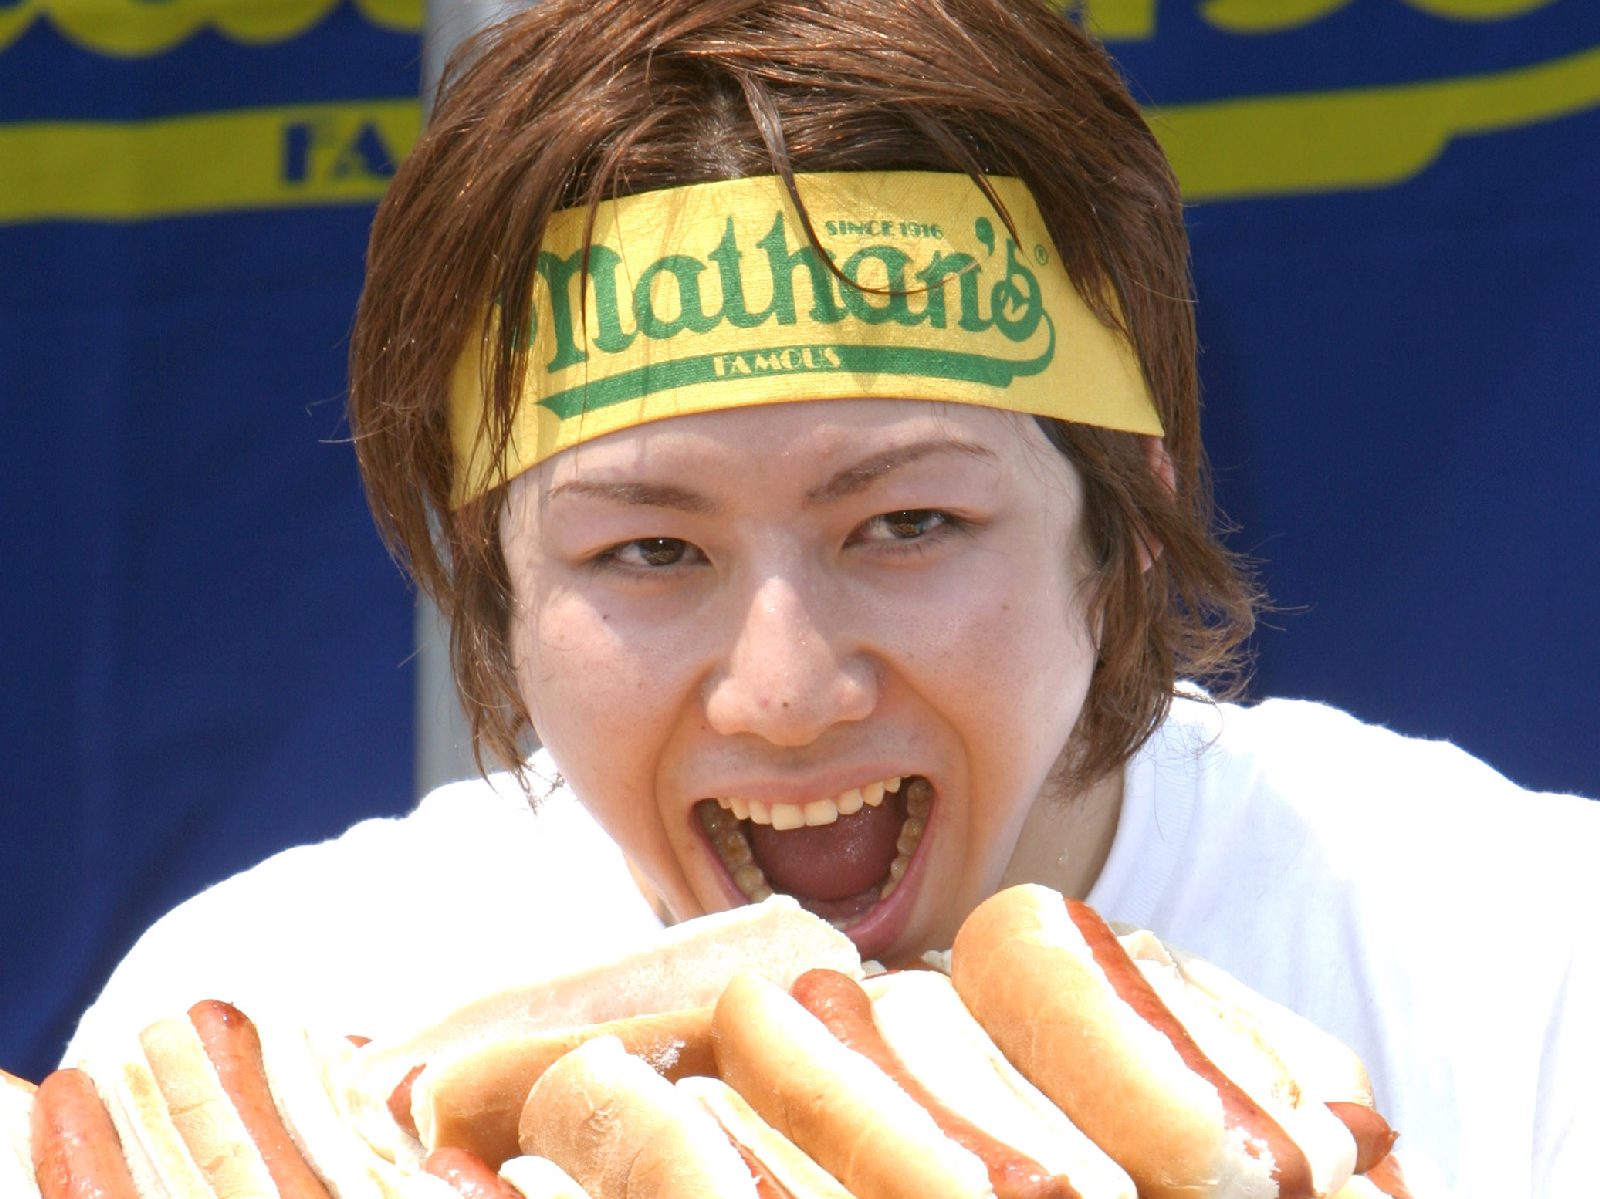 Kobayashi Thinks Hot Dog Eating Contests Are Easier Than They Were Ten Years Ago